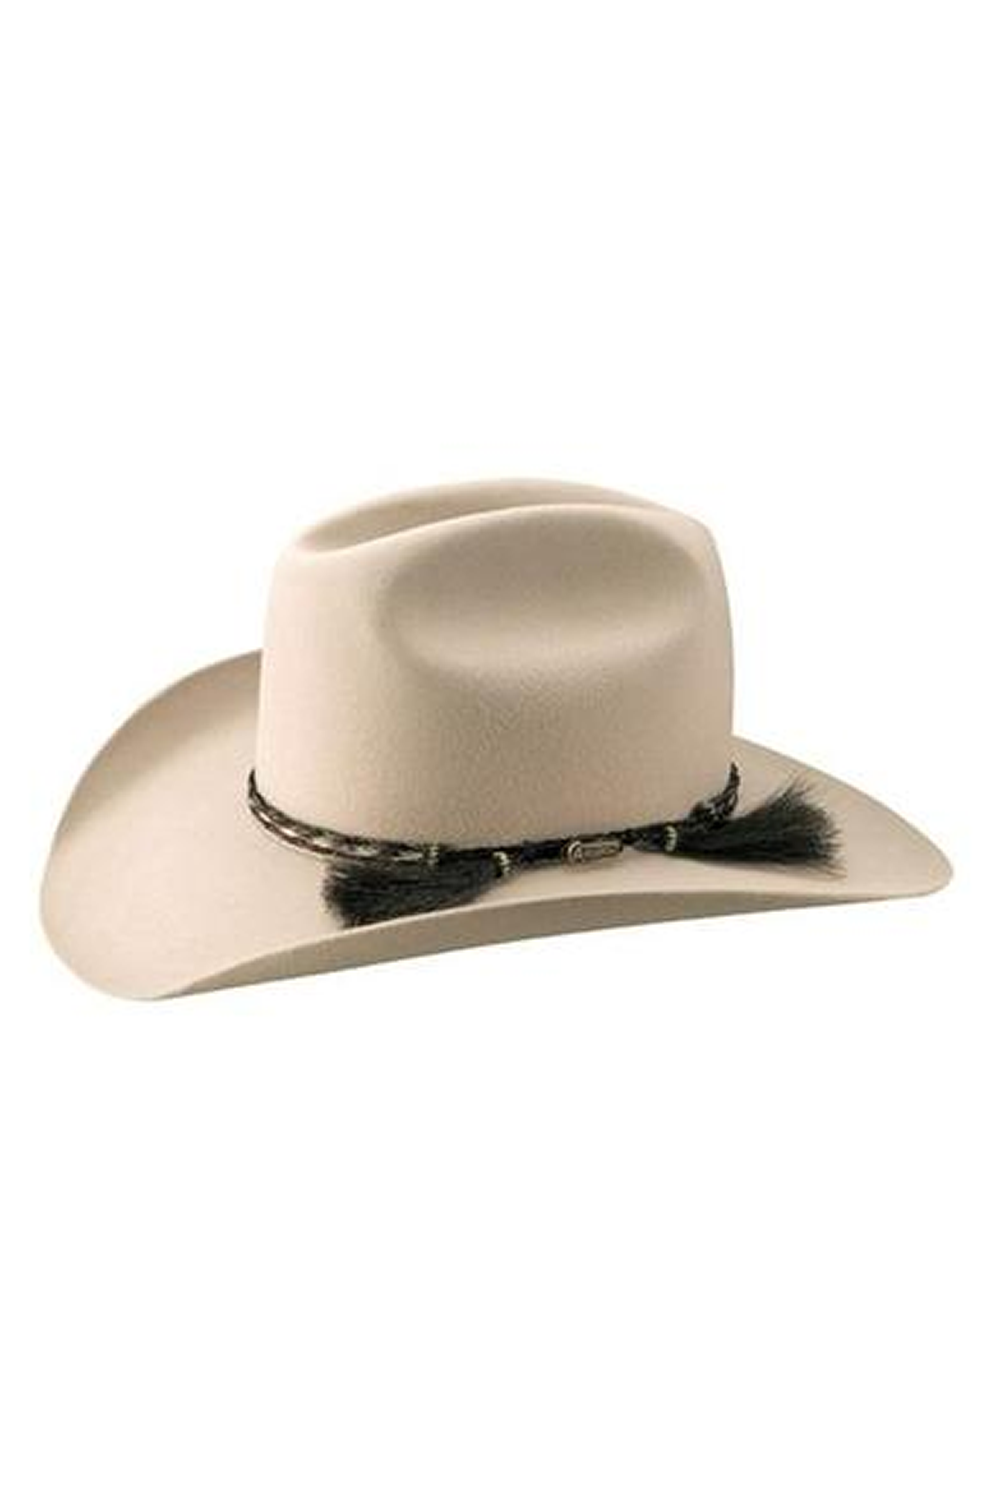 Akubra Rough Rider Light Sand